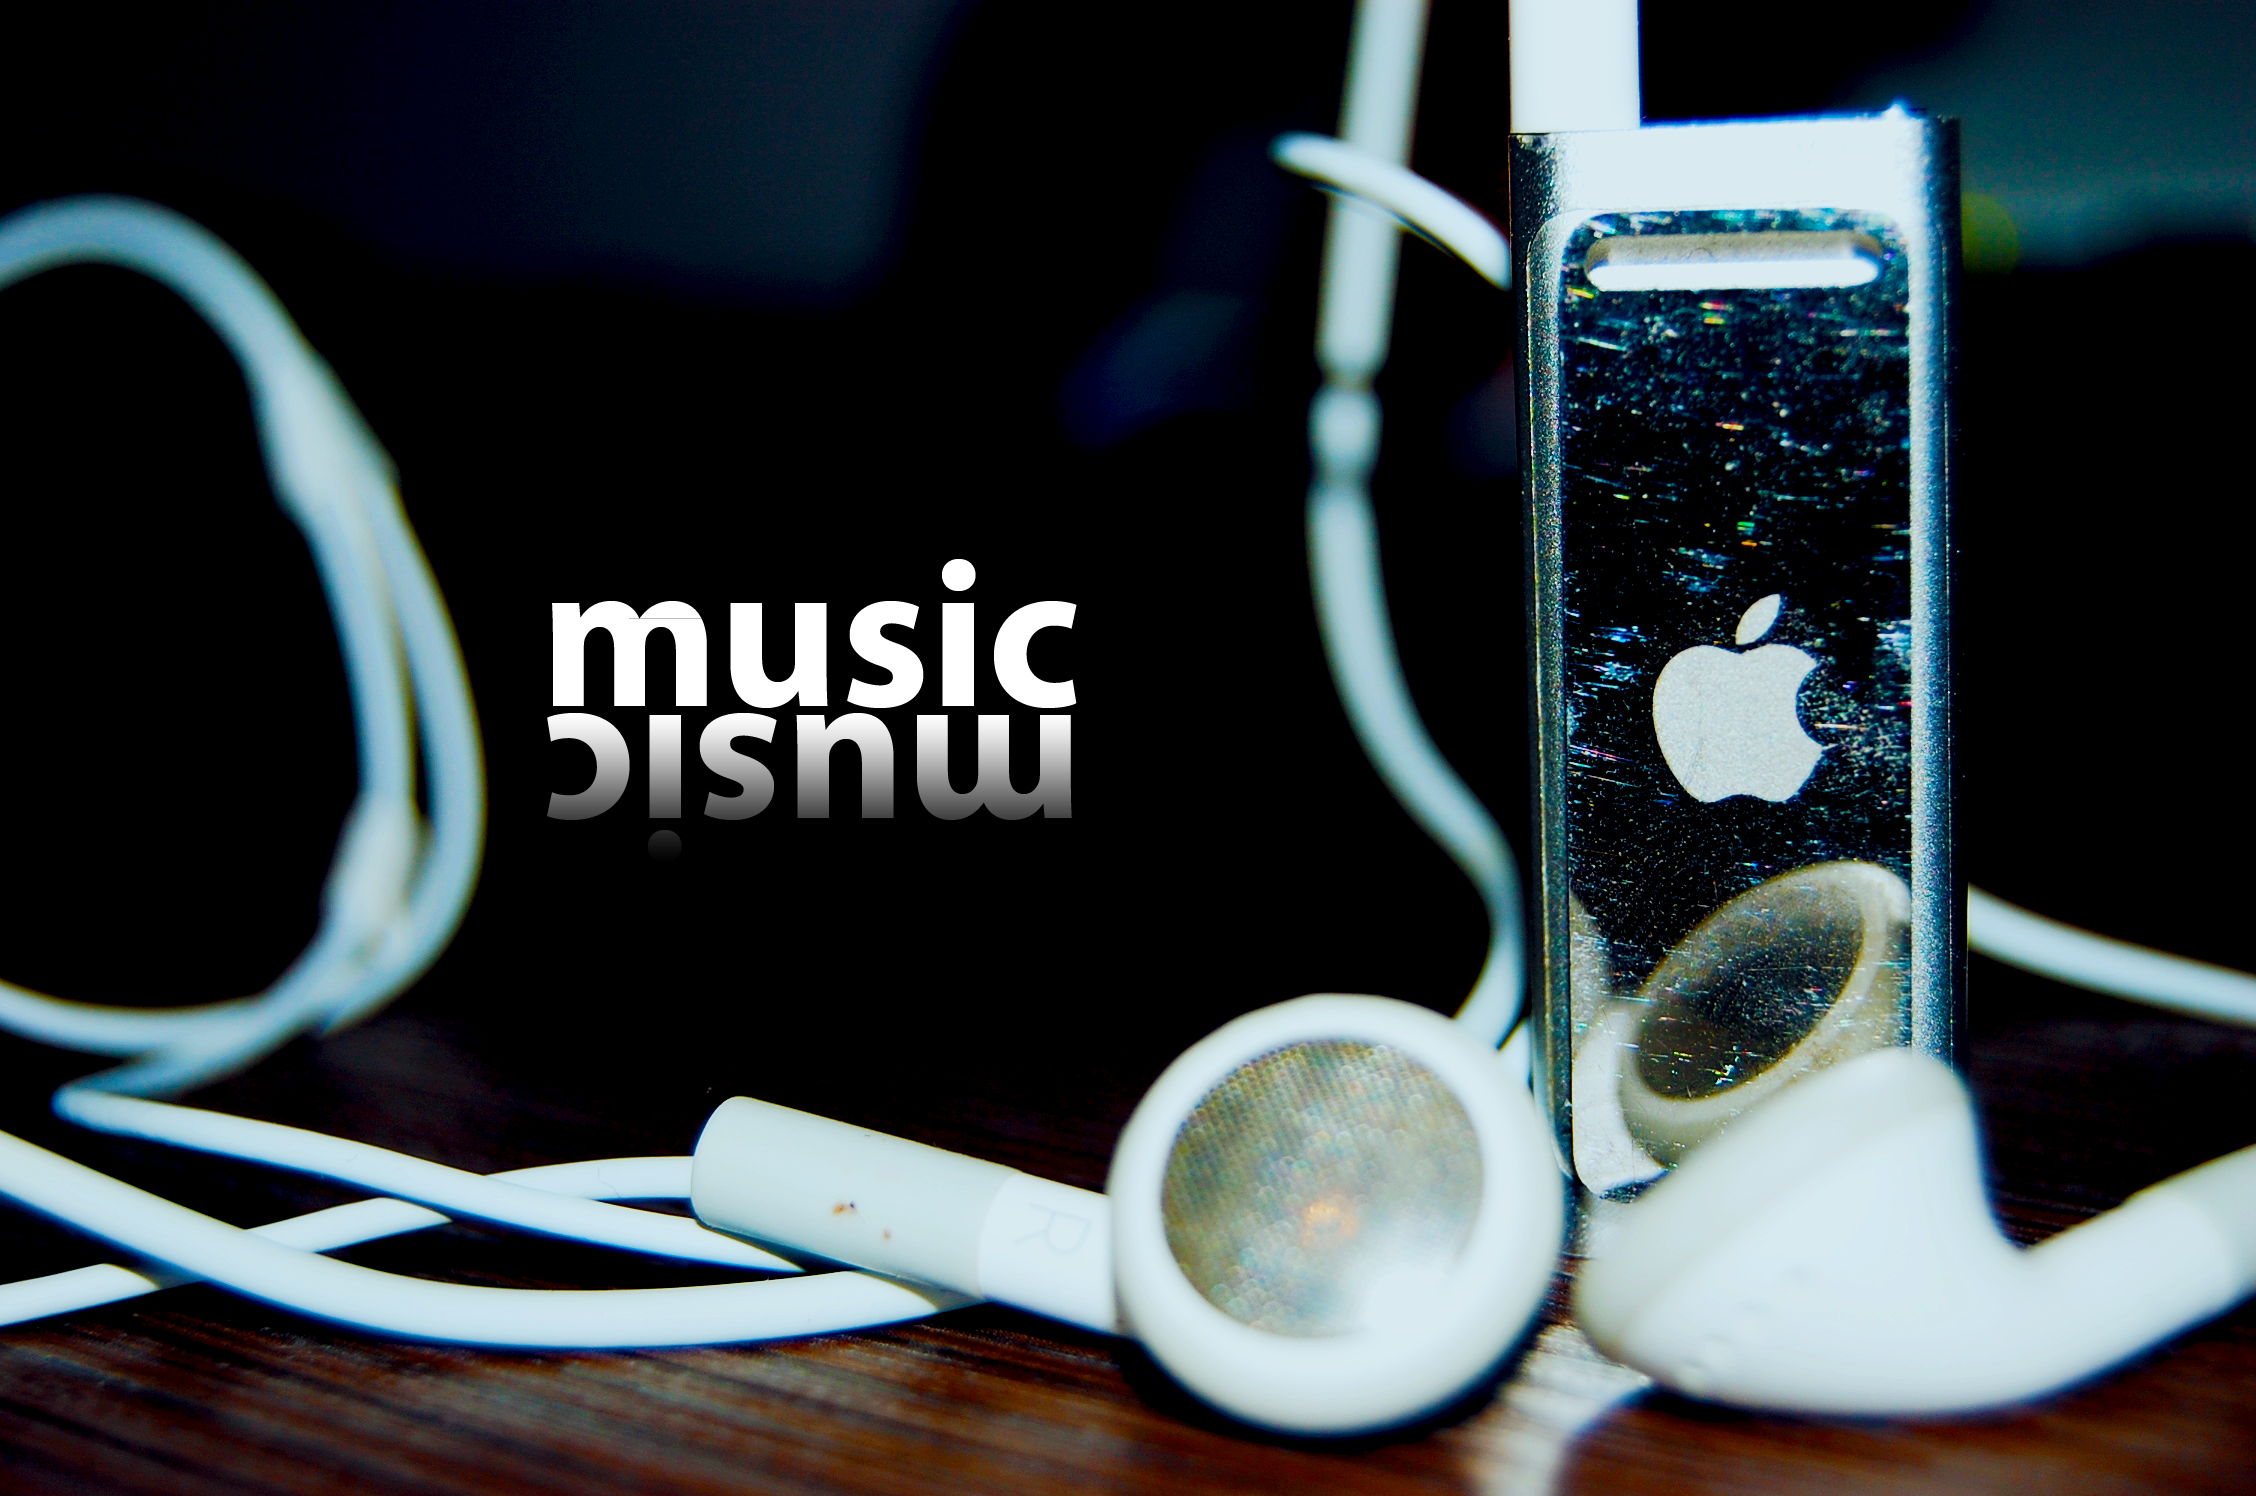 Music iPod Wallpaper by Theo01 on DeviantArt